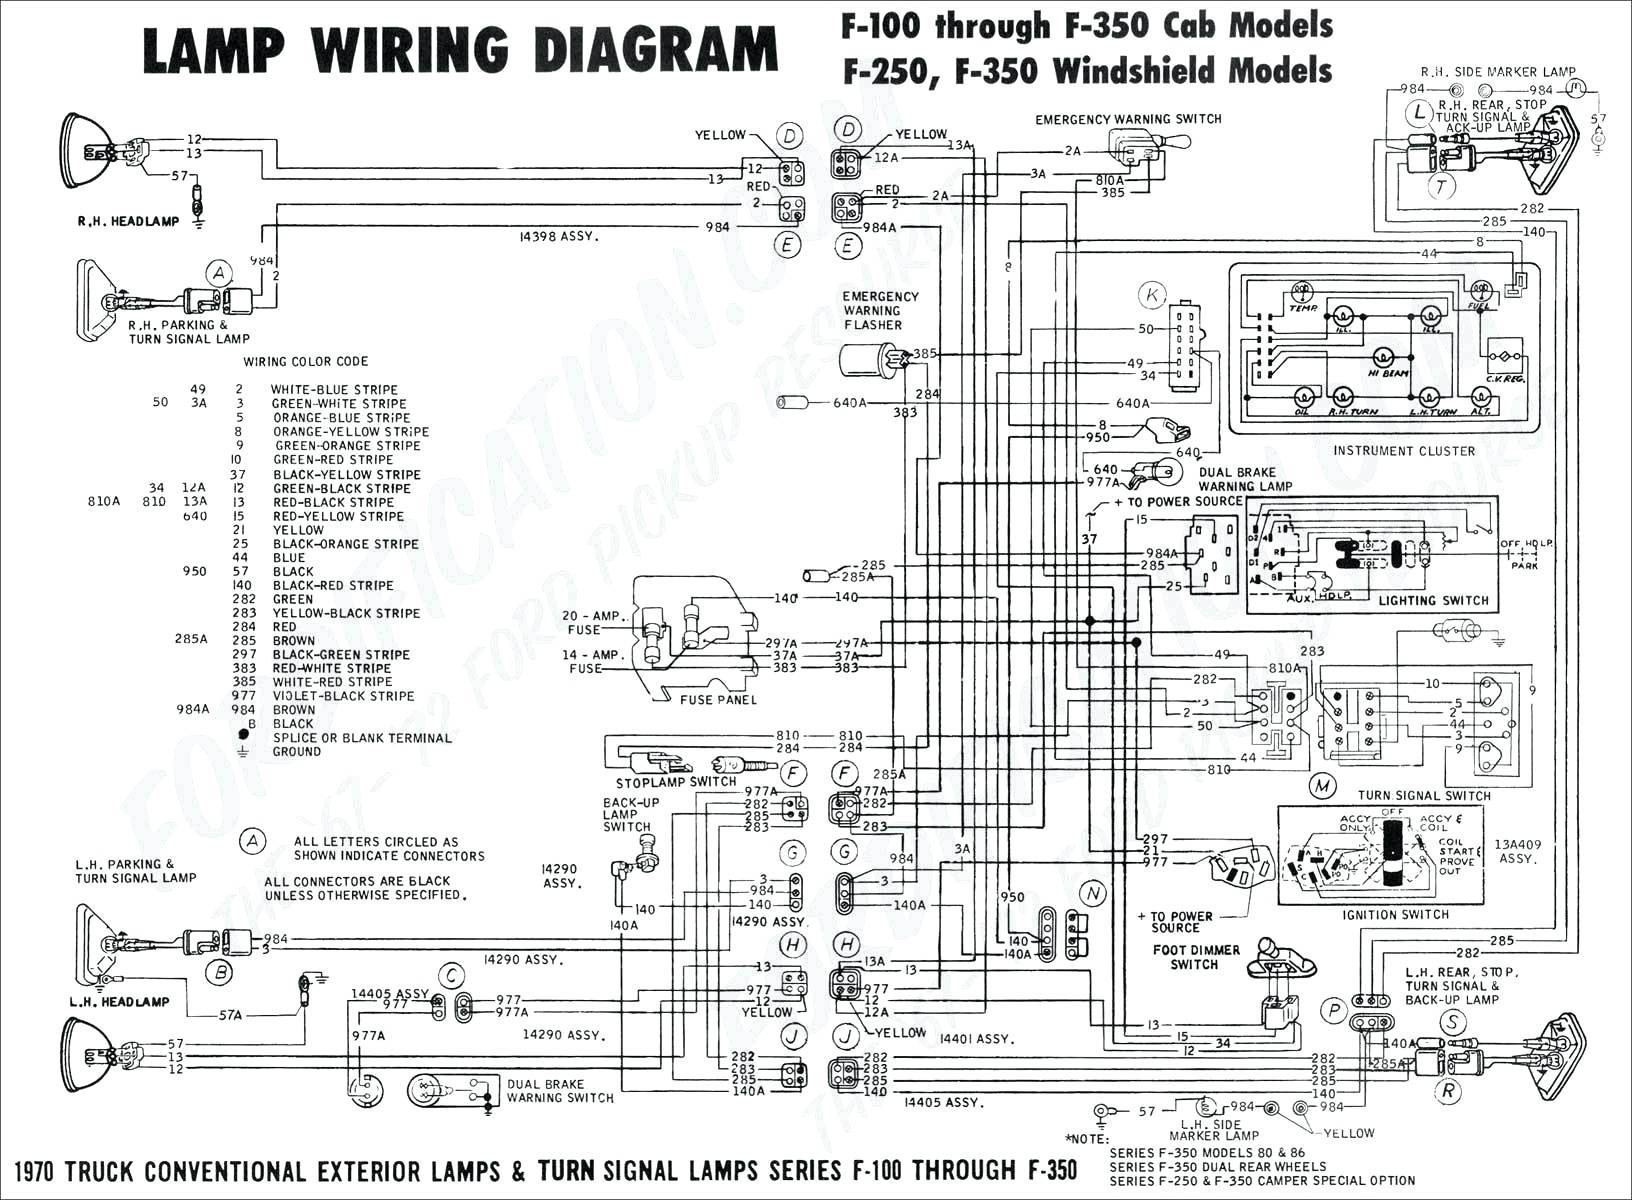 7 3 Powerstroke Parts Diagram 2001 F250 Engine Diagram Experts Wiring Diagram • Of 7 3 Powerstroke Parts Diagram Glow Engine Diagram Experts Wiring Diagram •